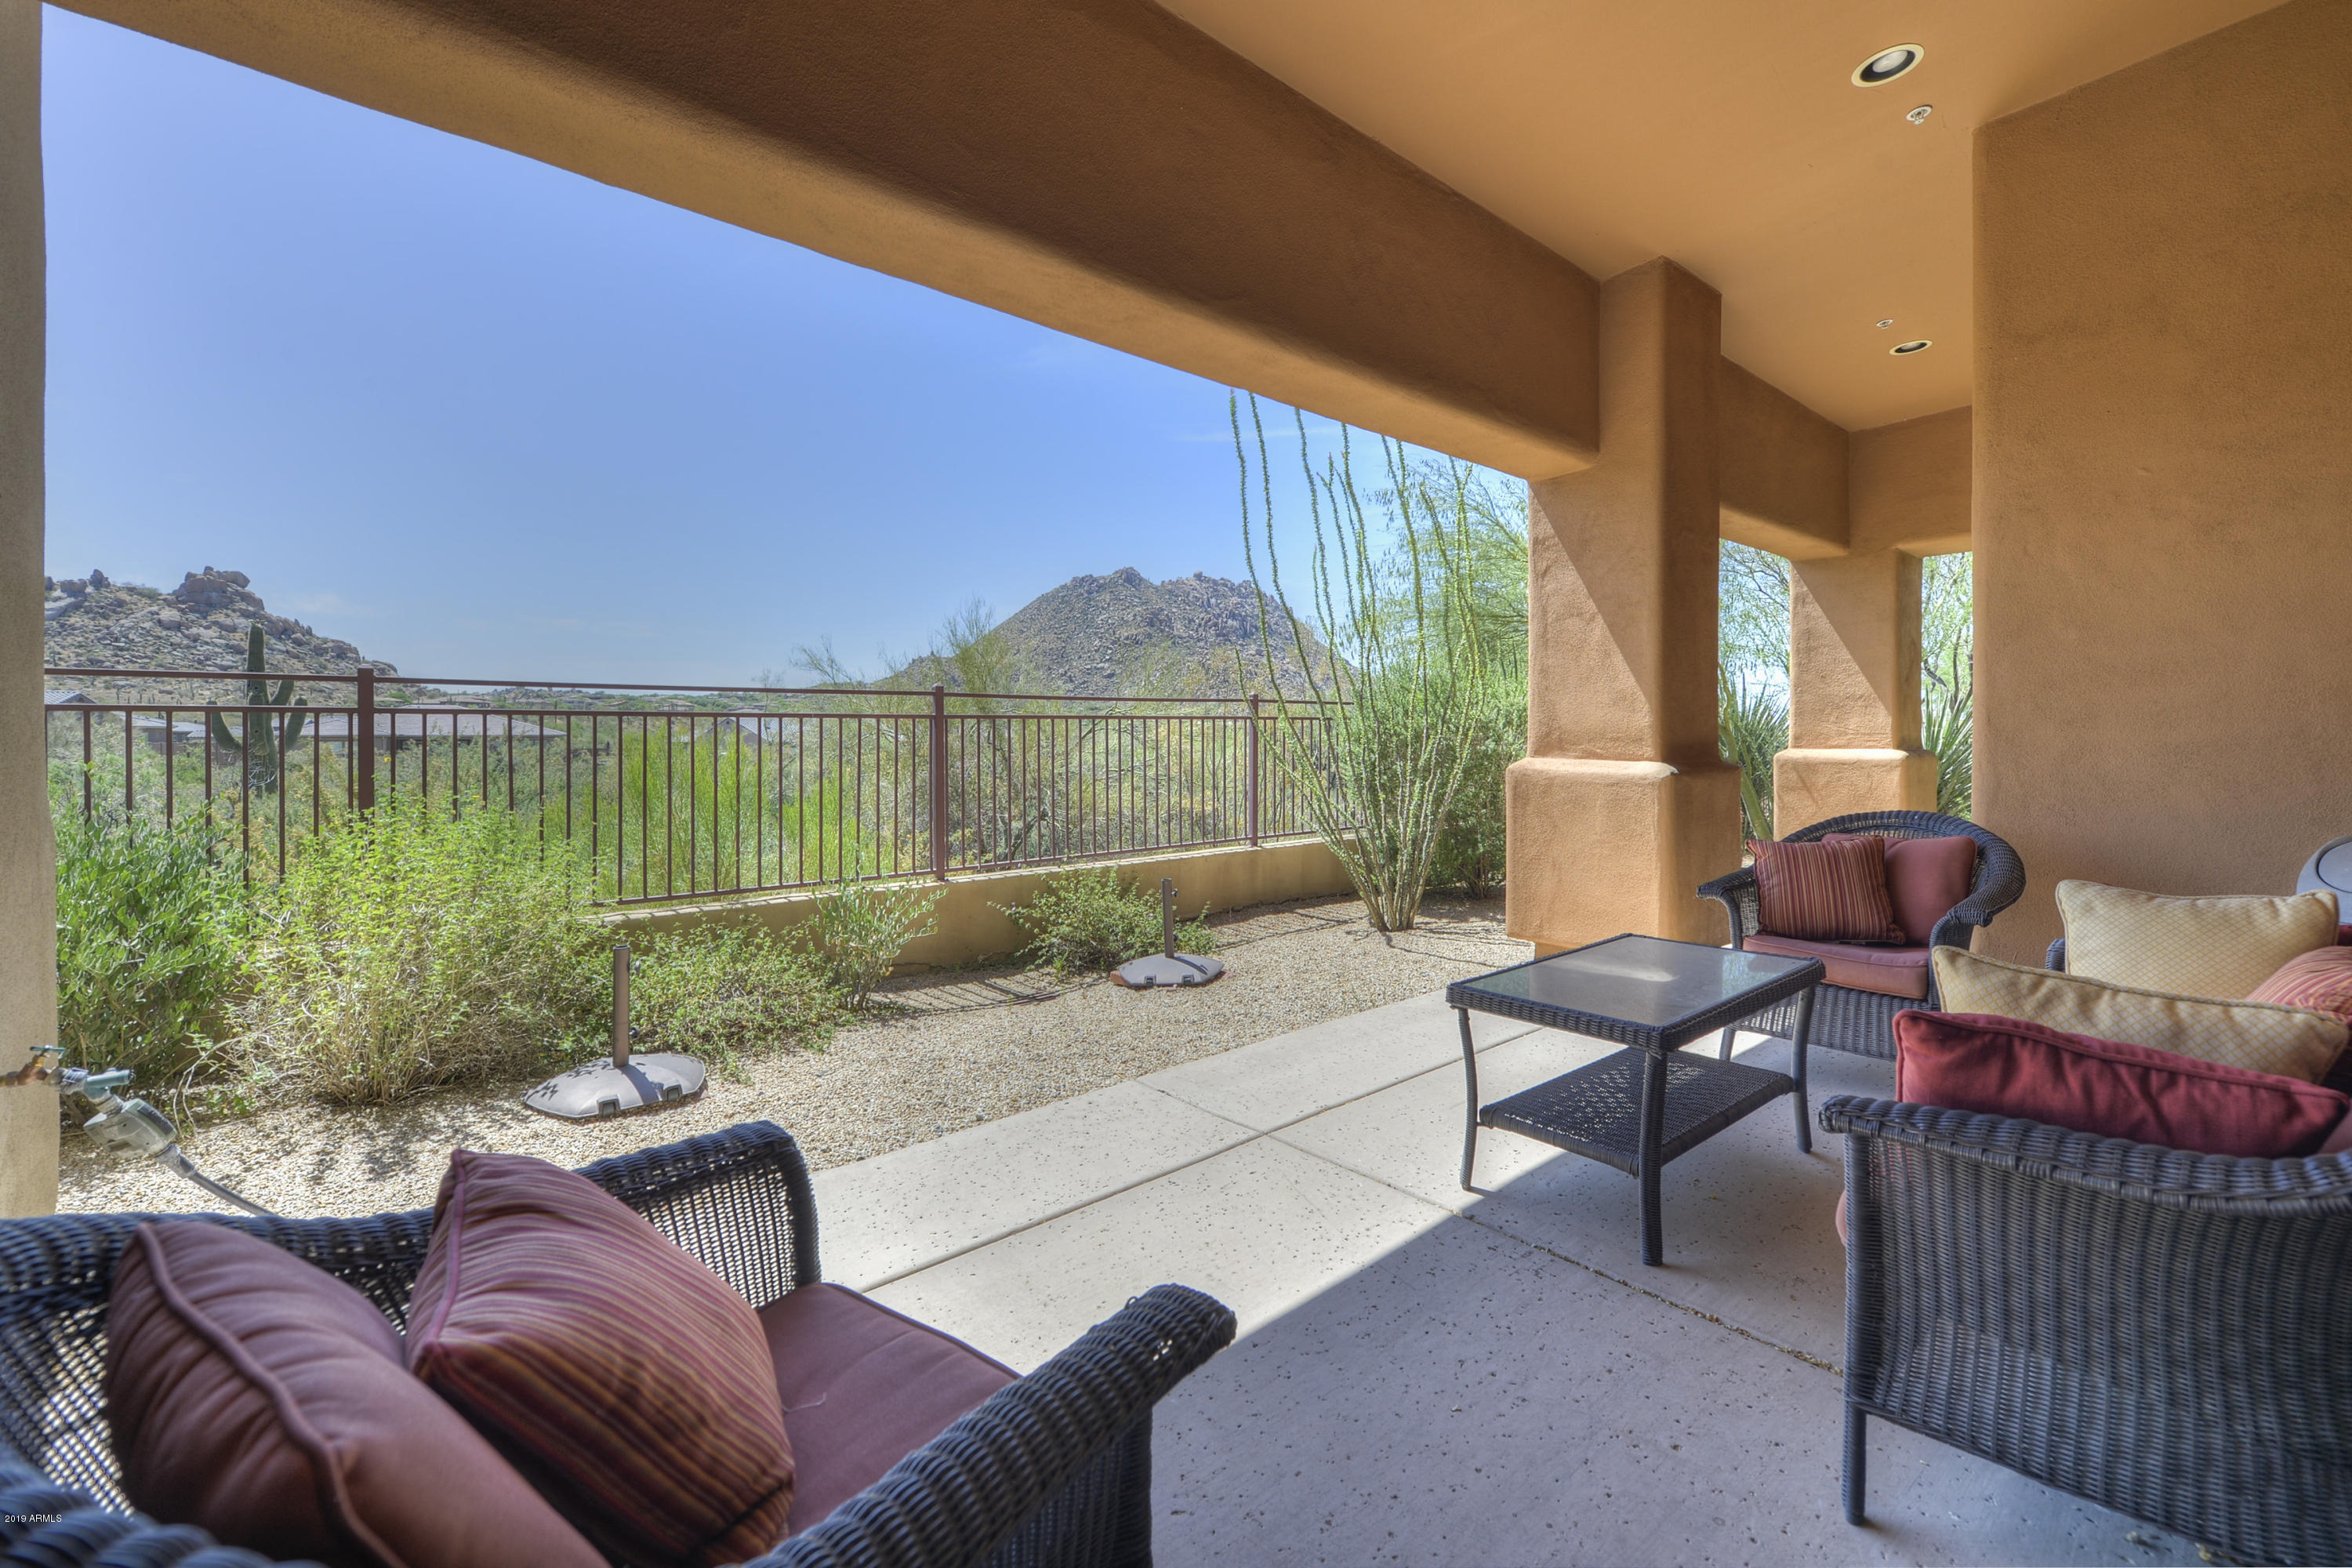 27000 N Alma School Parkway, Unit 1016, Scottsdale AZ 85262 - Photo 1